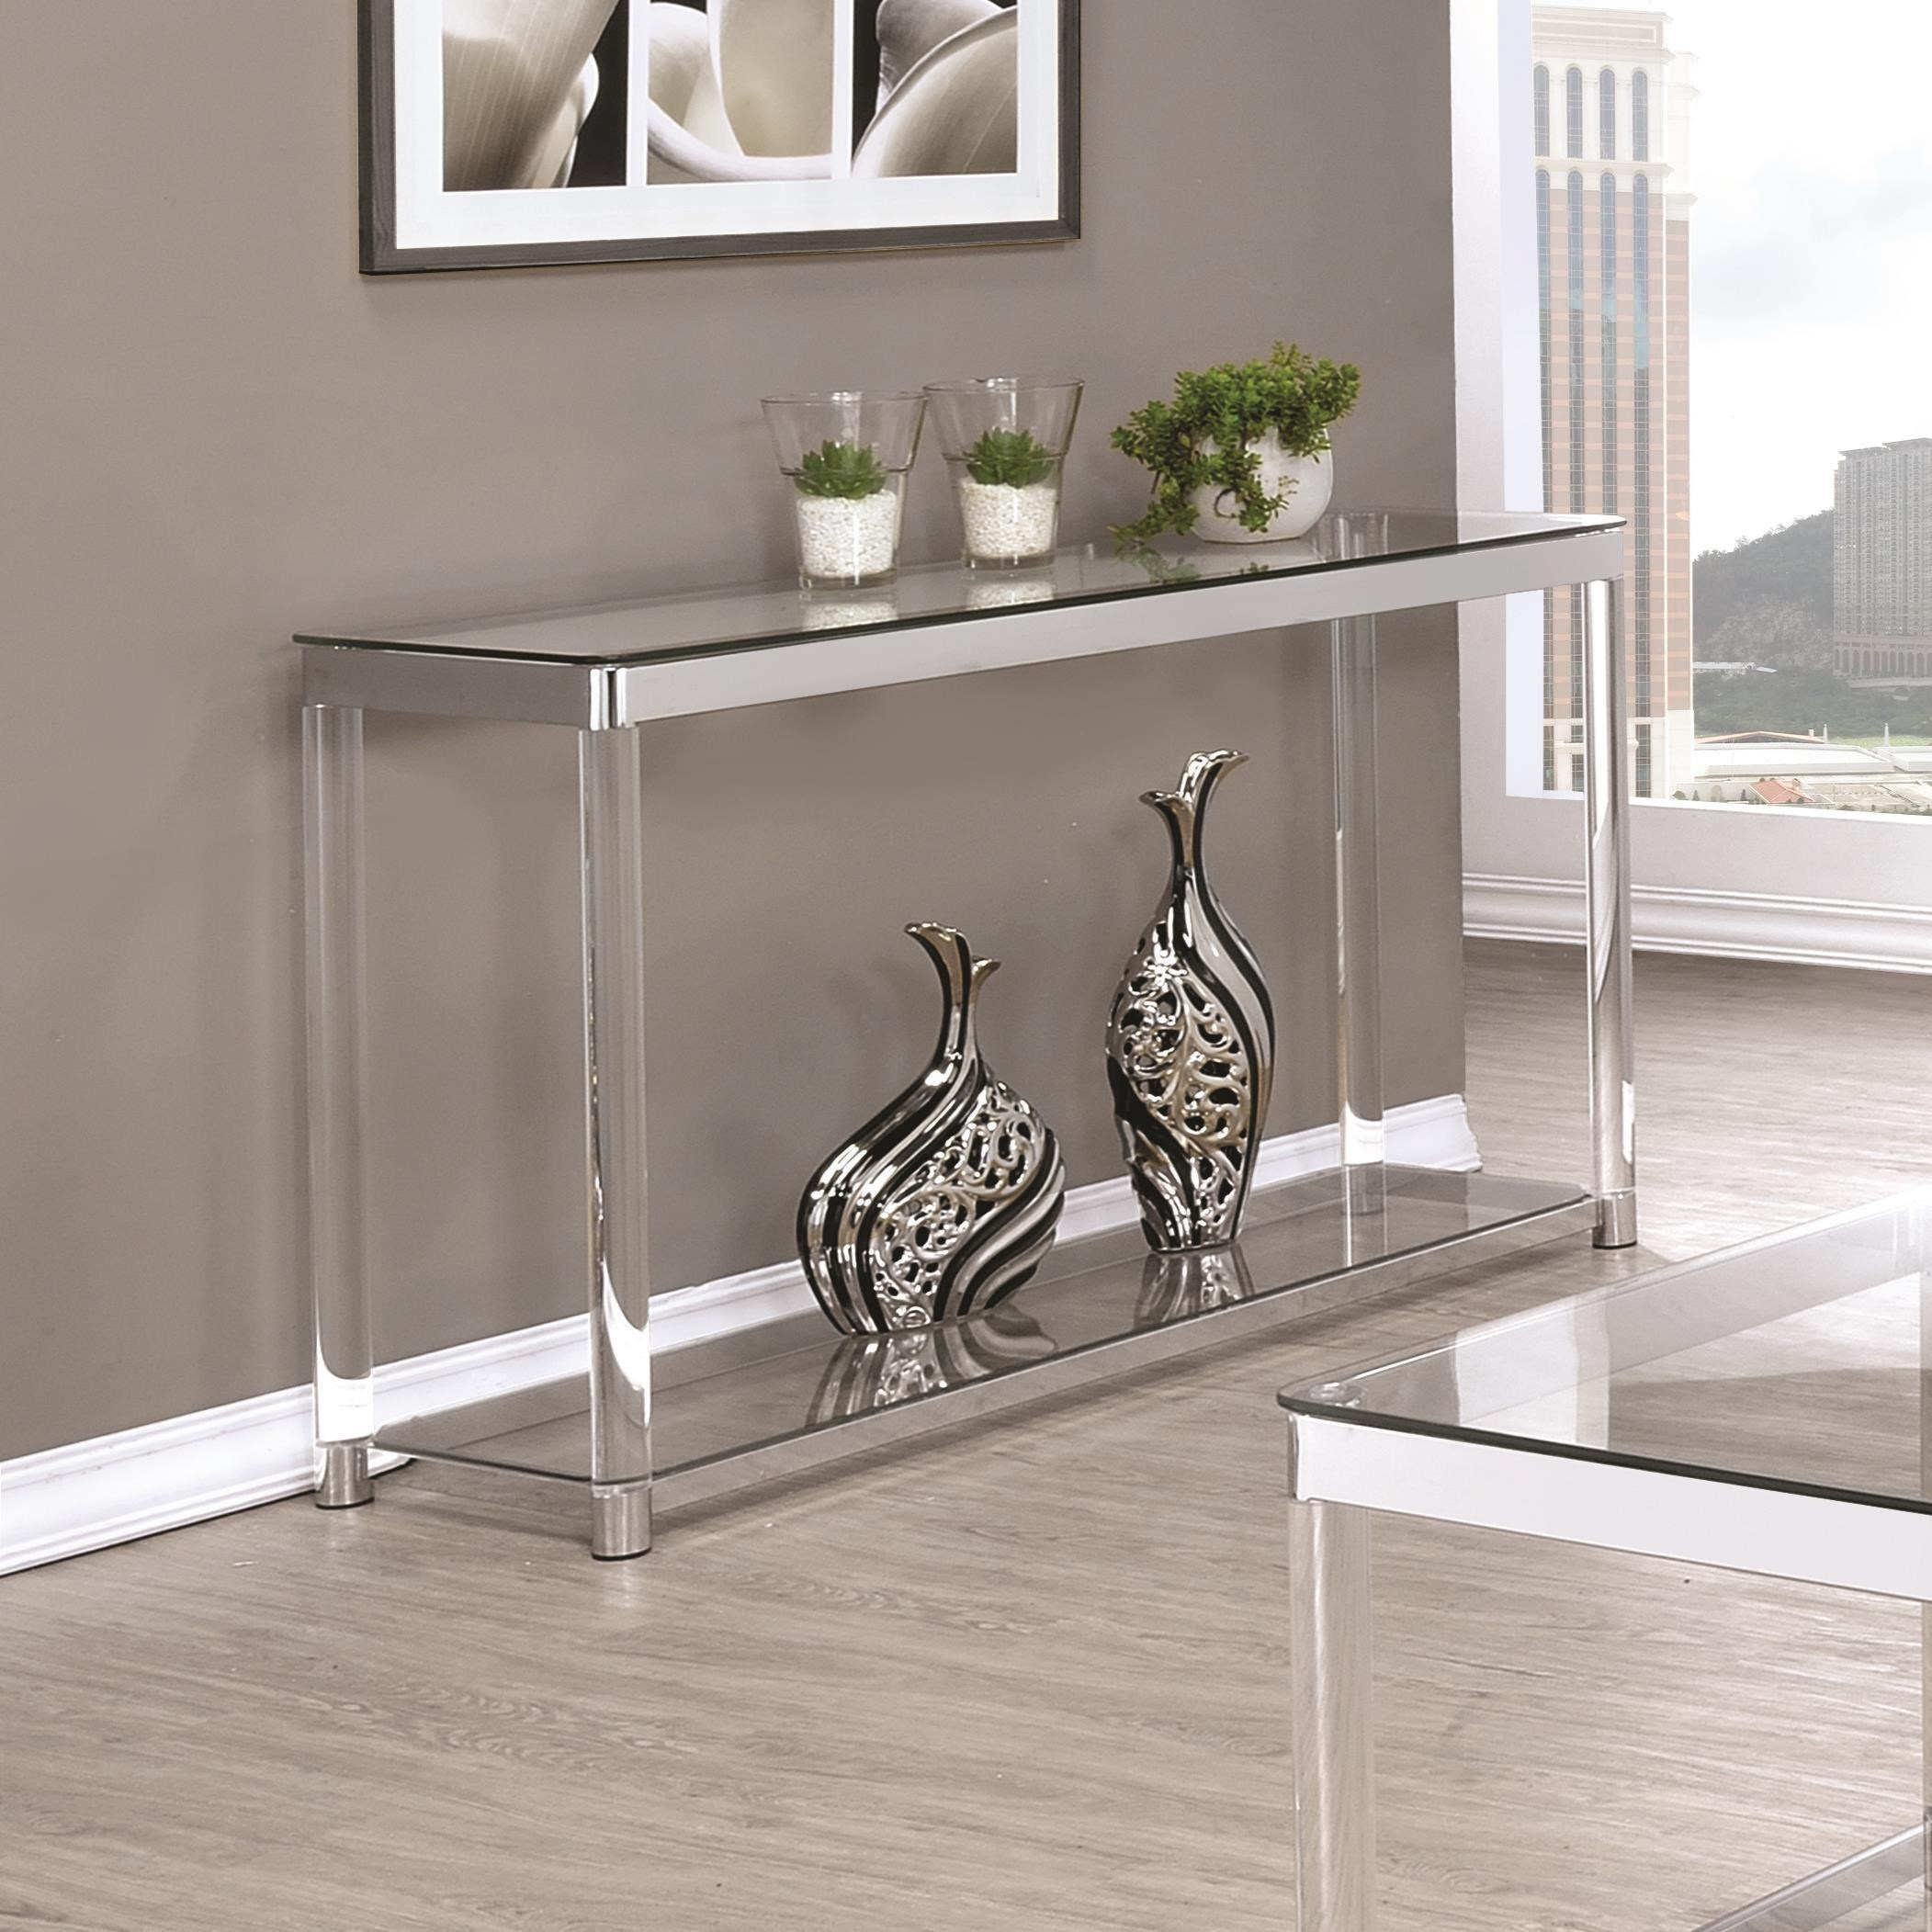 72074 Sofa Table by Coaster at Value City Furniture